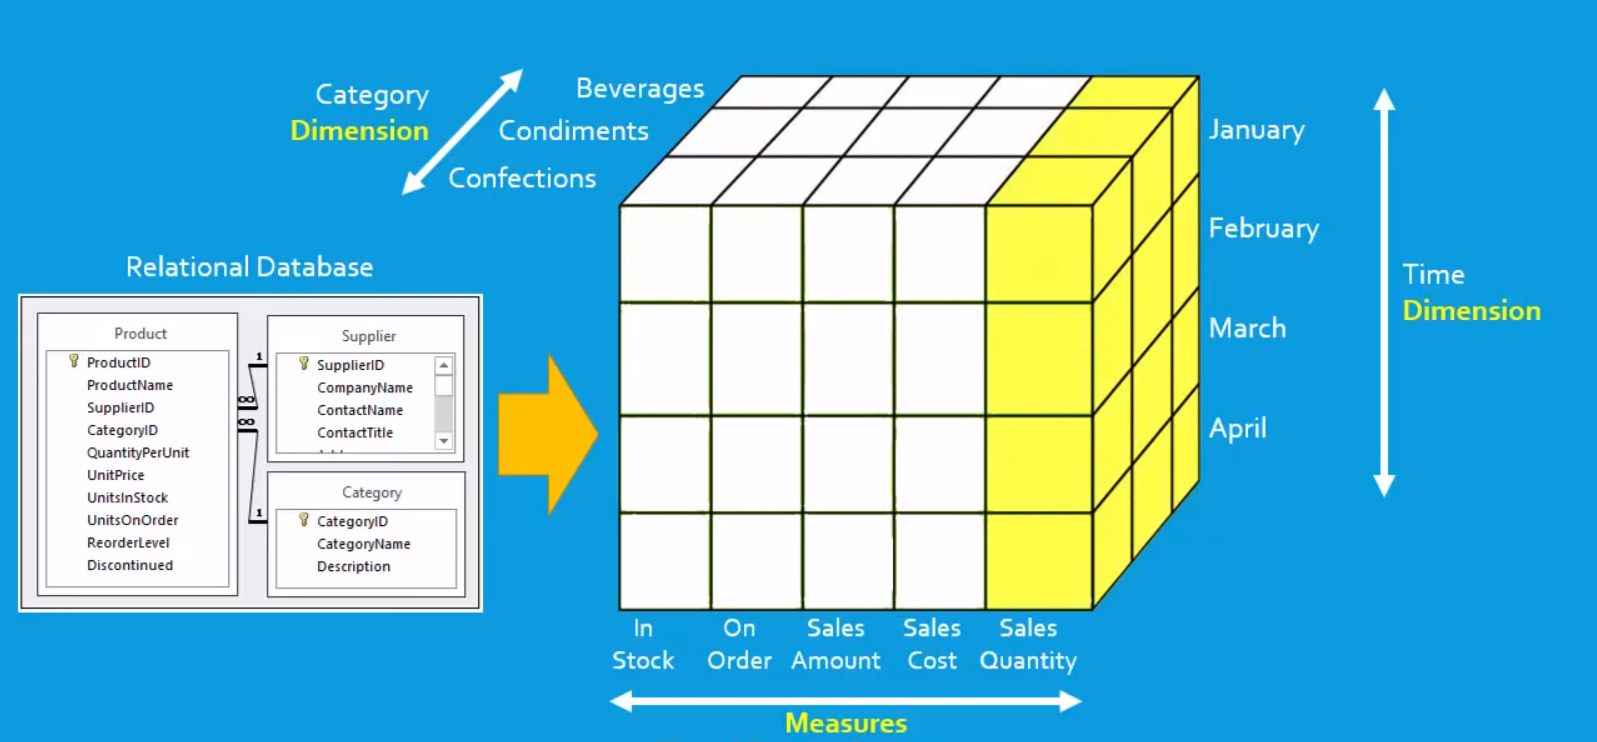 OLAP Cube representing data from an OLTP database in multiple dimensions